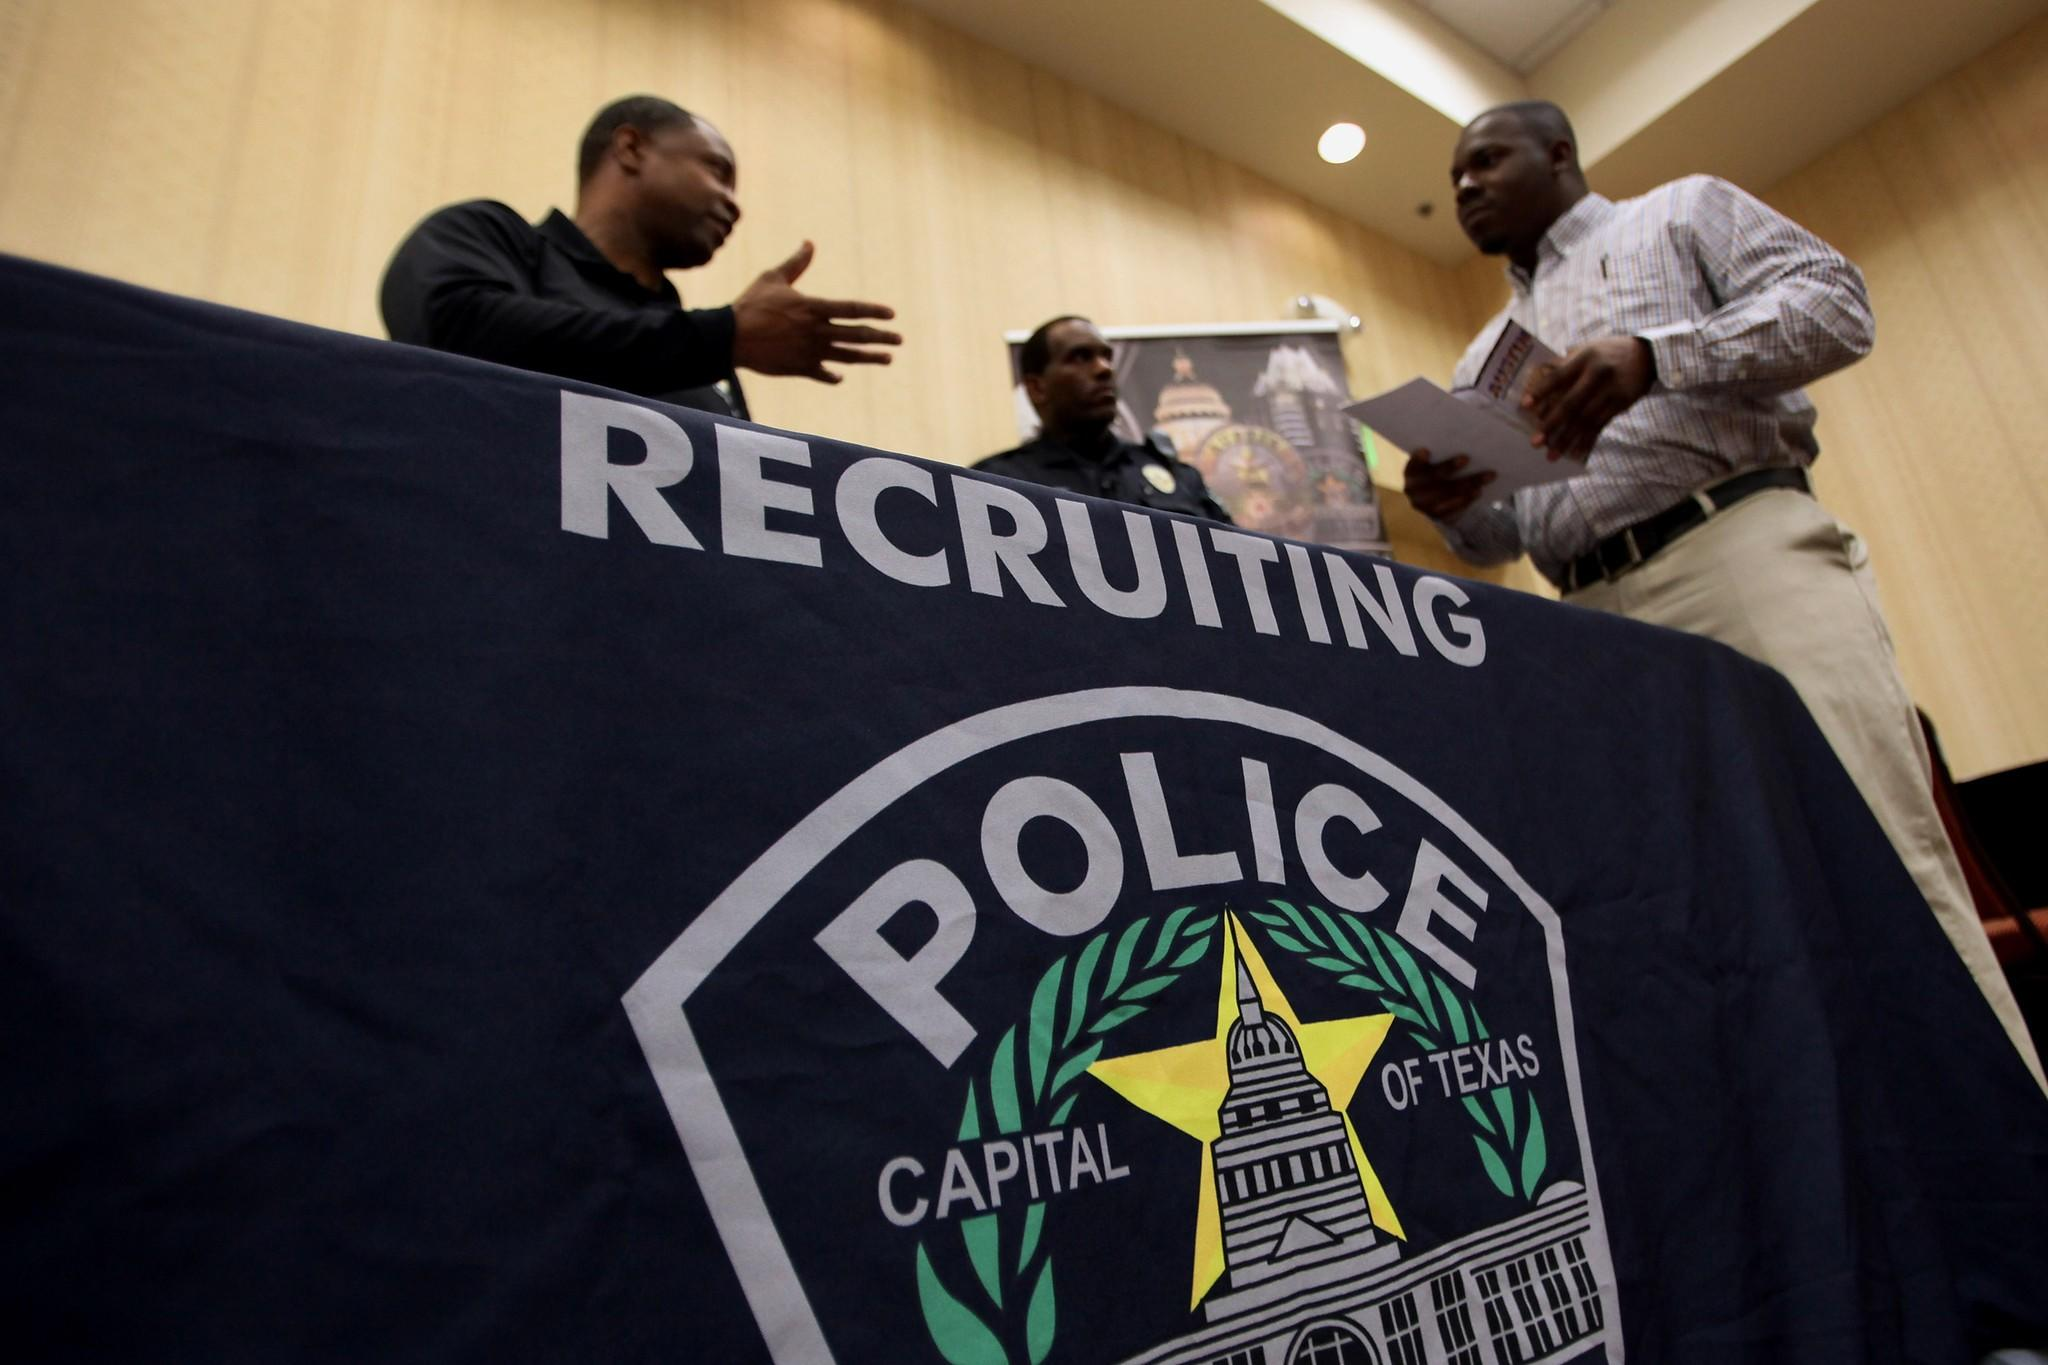 A job-seeker speaks to Austin, Texas, Police Department recruiters during a job fair hosted by JobExpo.com in Dallas.